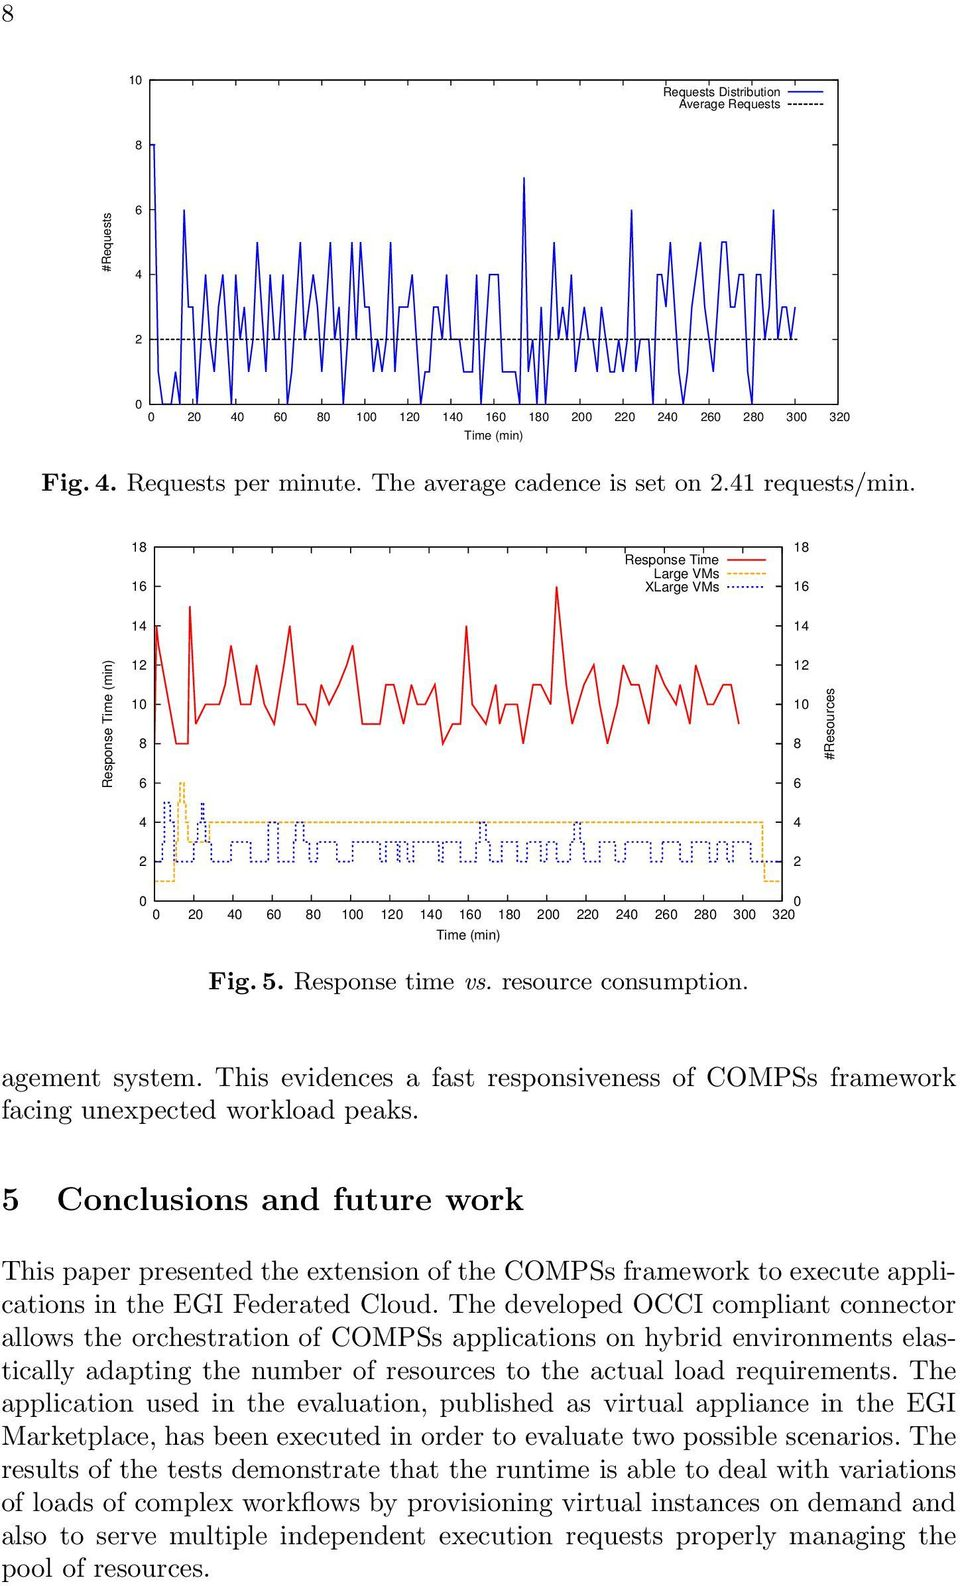 This evidences a fast responsiveness of COMPSs framework facing unexpected workload peaks.